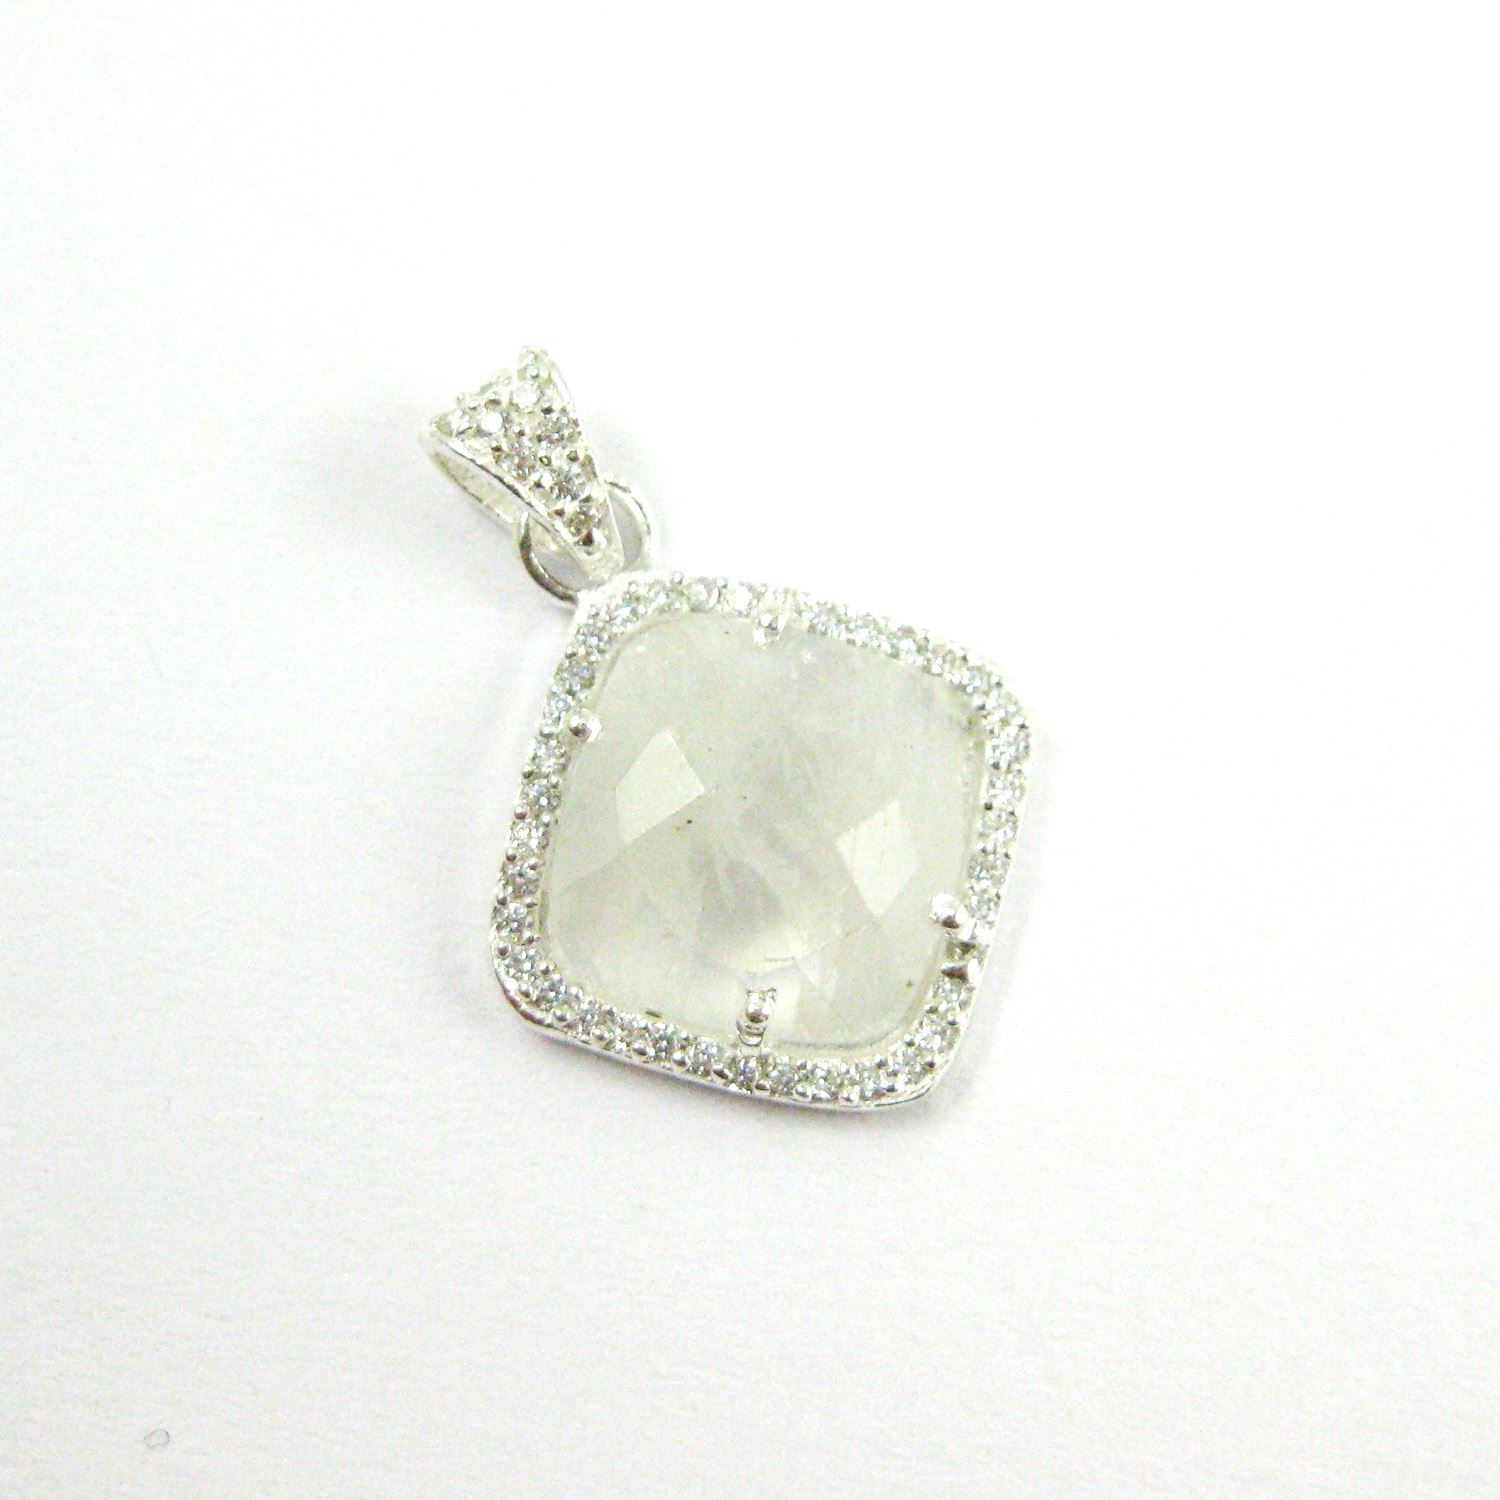 Sterling Silver Pave Bezel Gemstone Pendant - Cubic Zirconia Pave Setting -  Diamond Shape Faceted Stone-Moonstone- 17mm